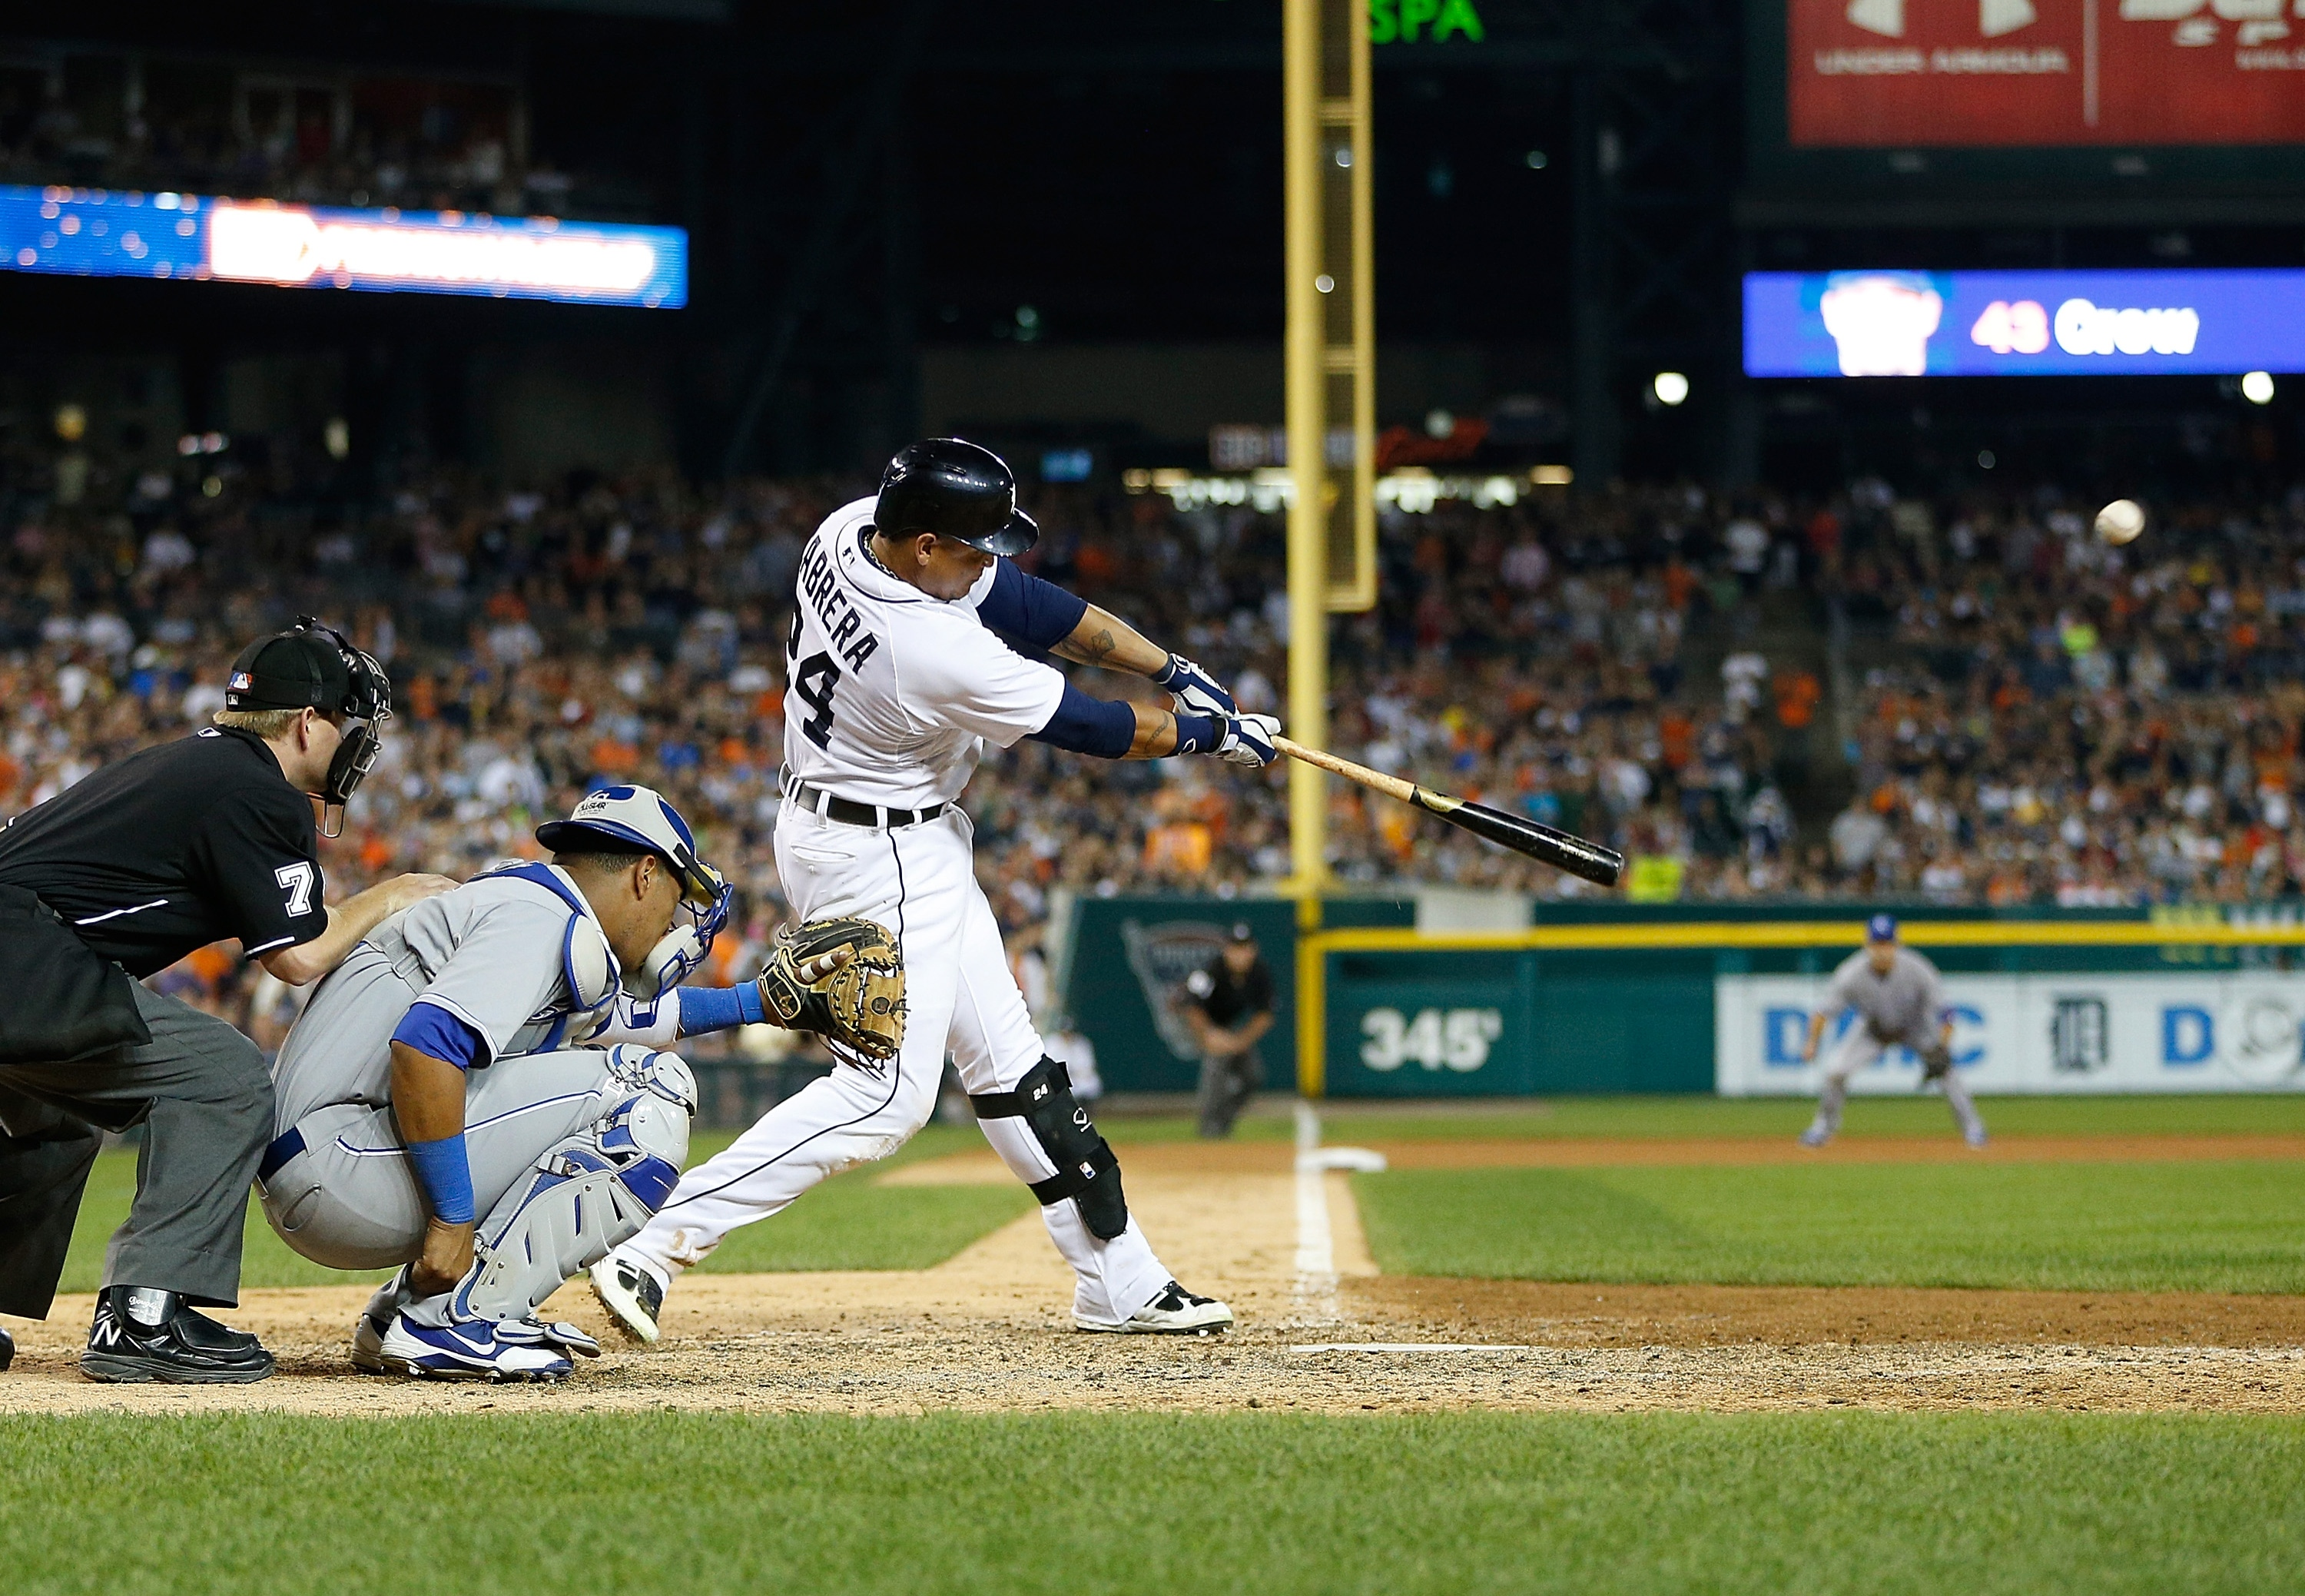 Miguel Cabrera hit a ninth-inning walk off home run against the Royals on Saturday. (Getty)